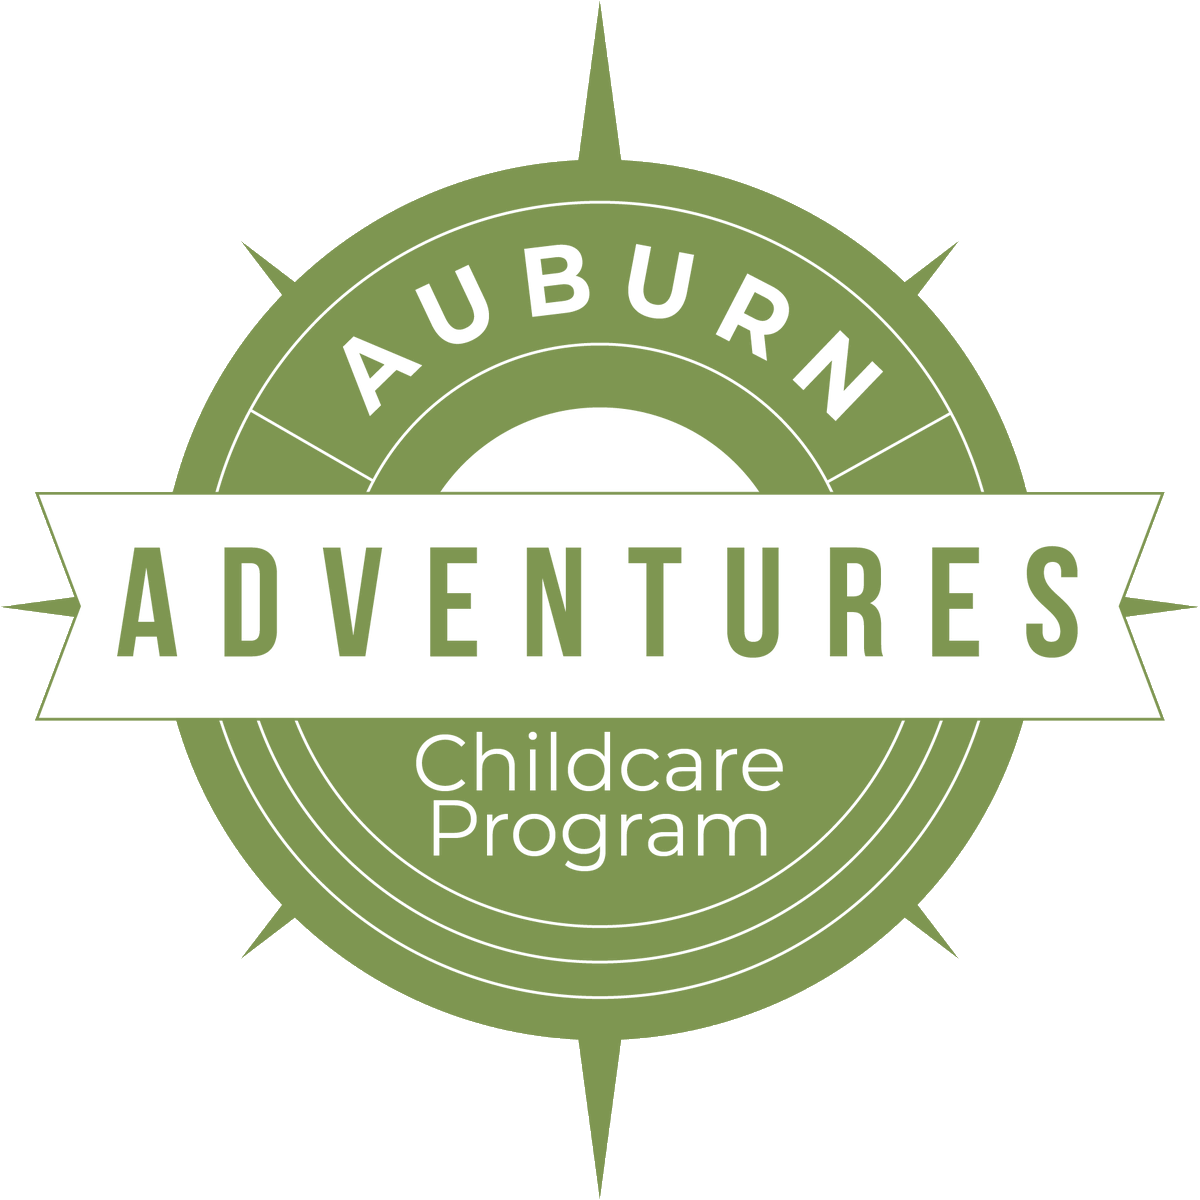 Auburn was approved for grant funding to support our new